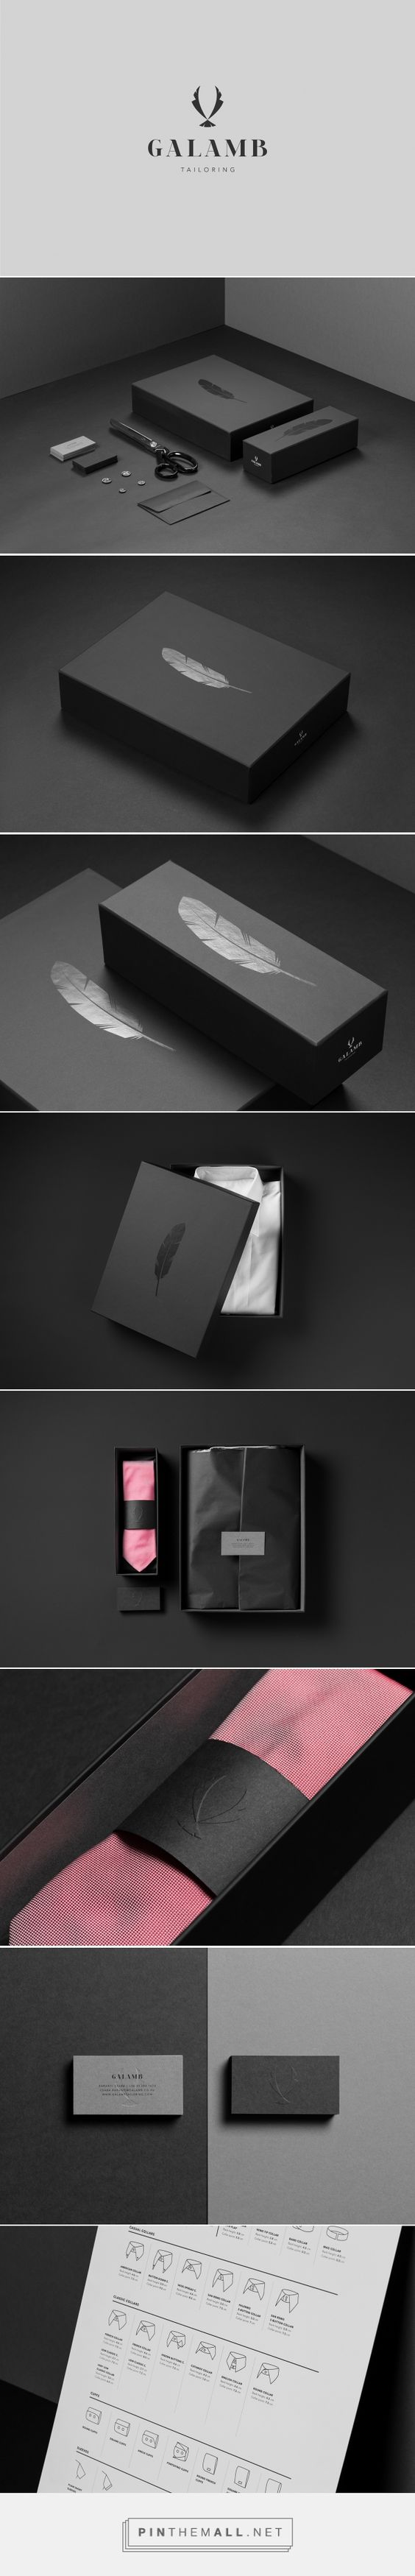 Branding, fashion and packaging for Galamb Tailoring on Behance curated by…